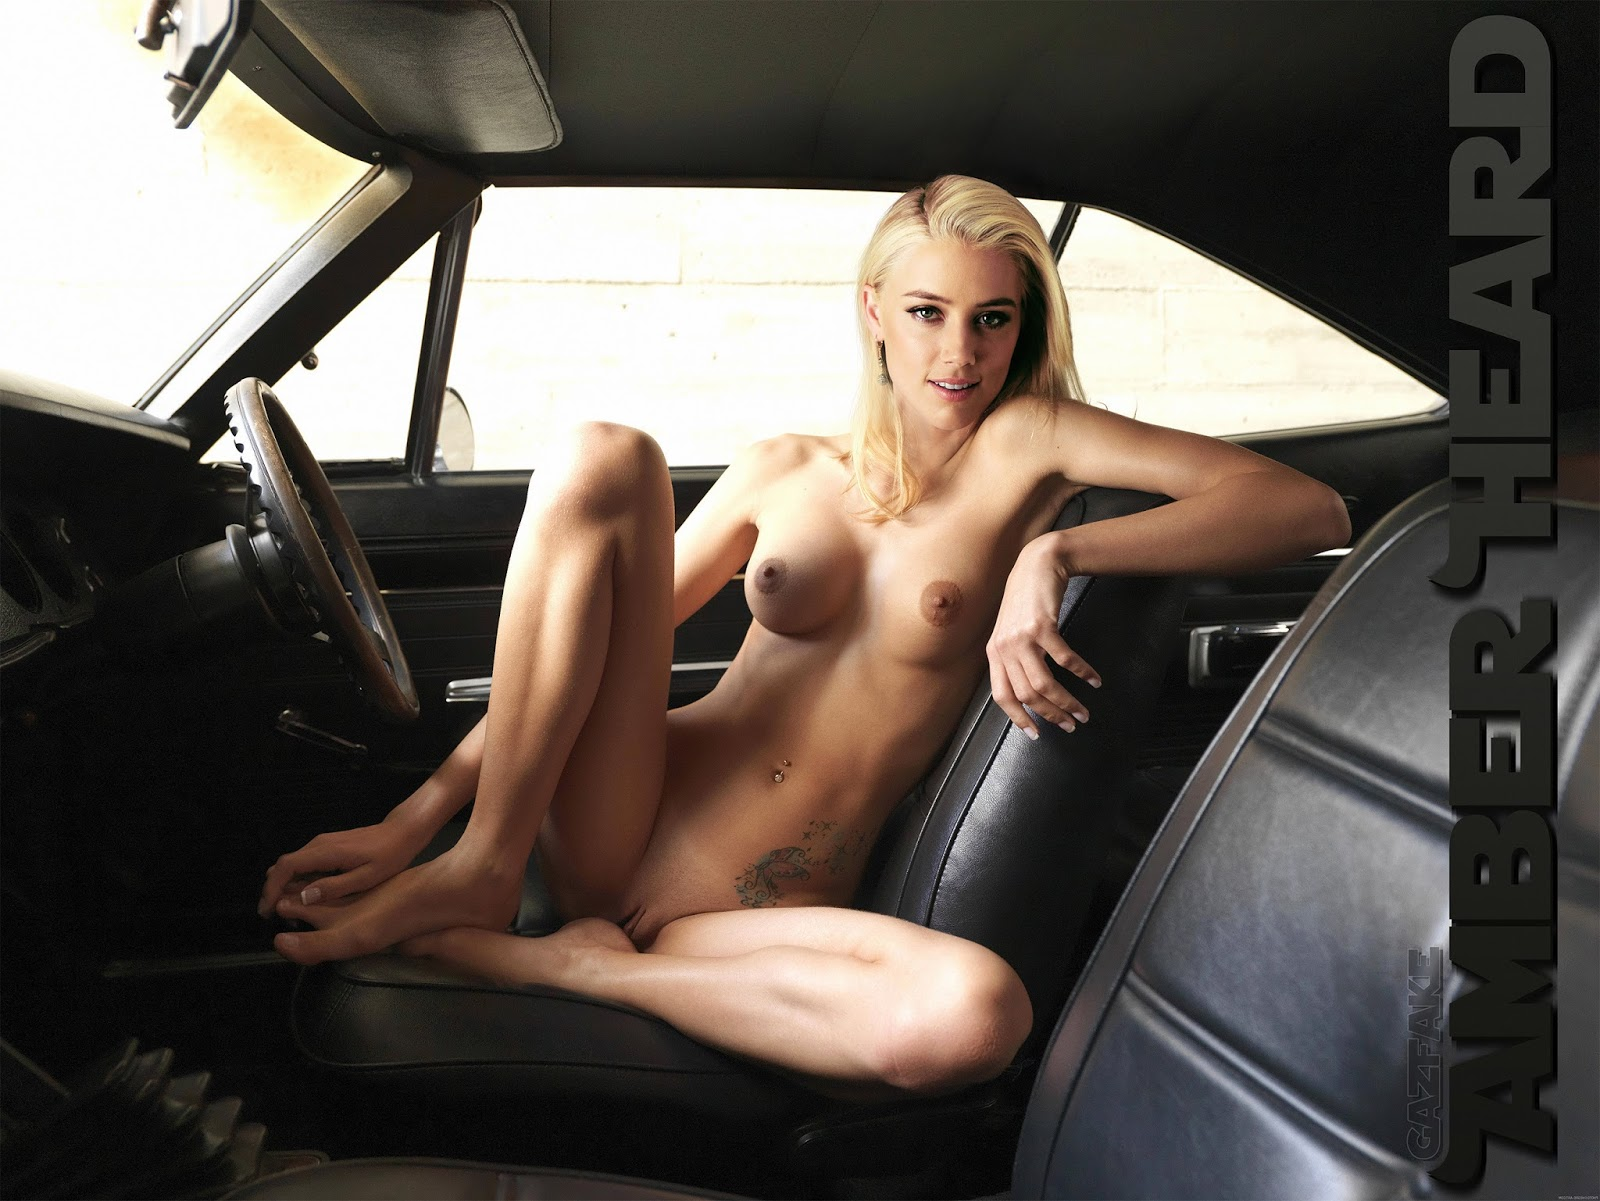 Amber naked in car